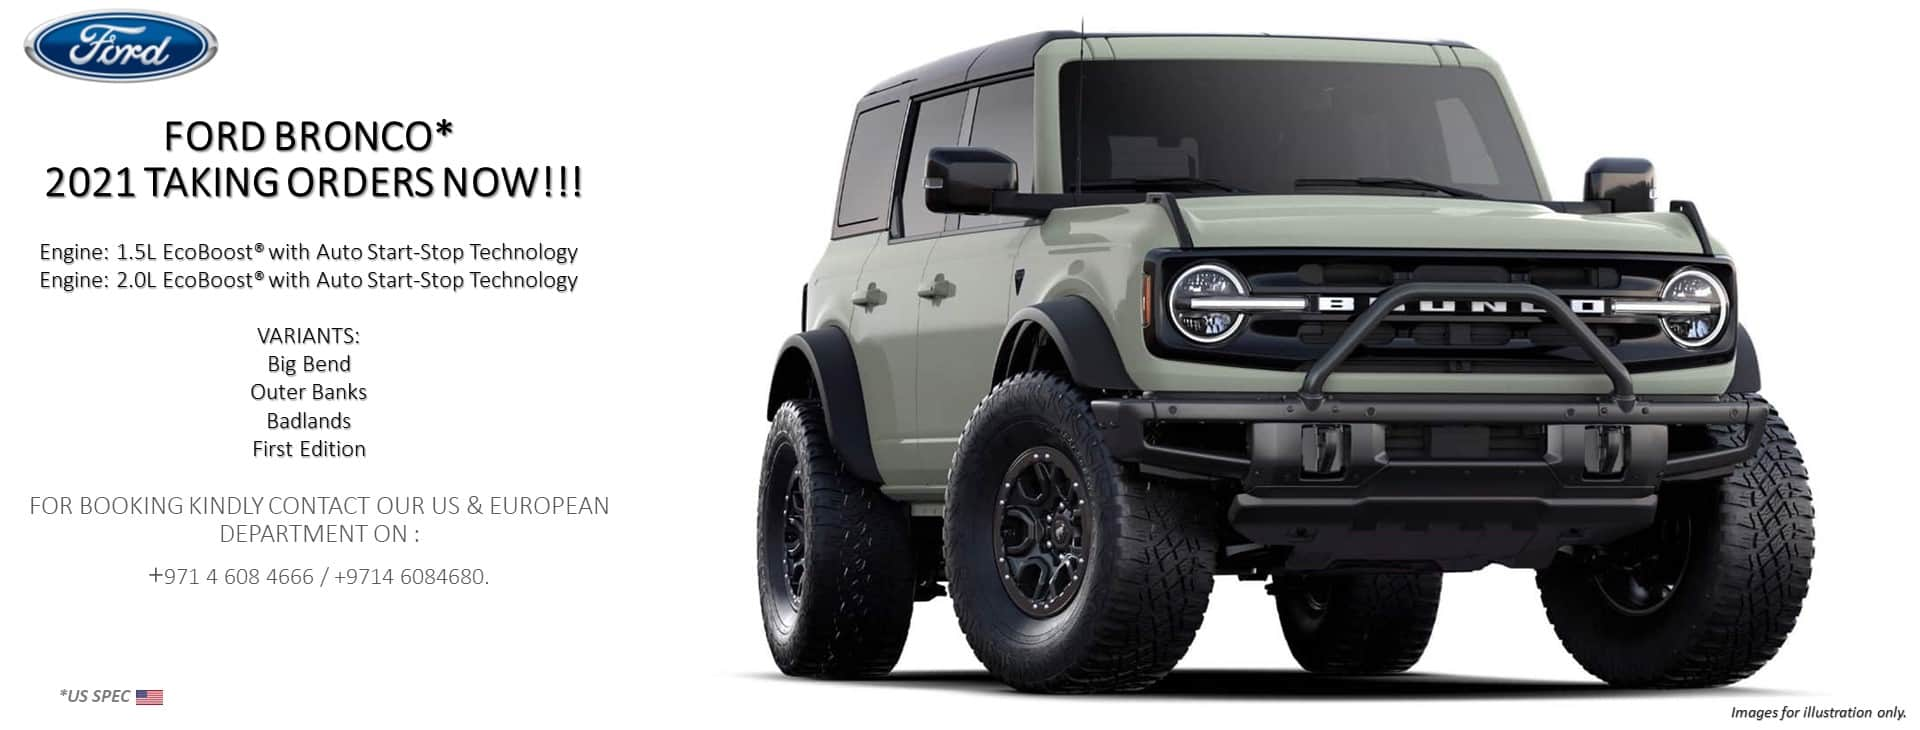 Ford Bronco_2021